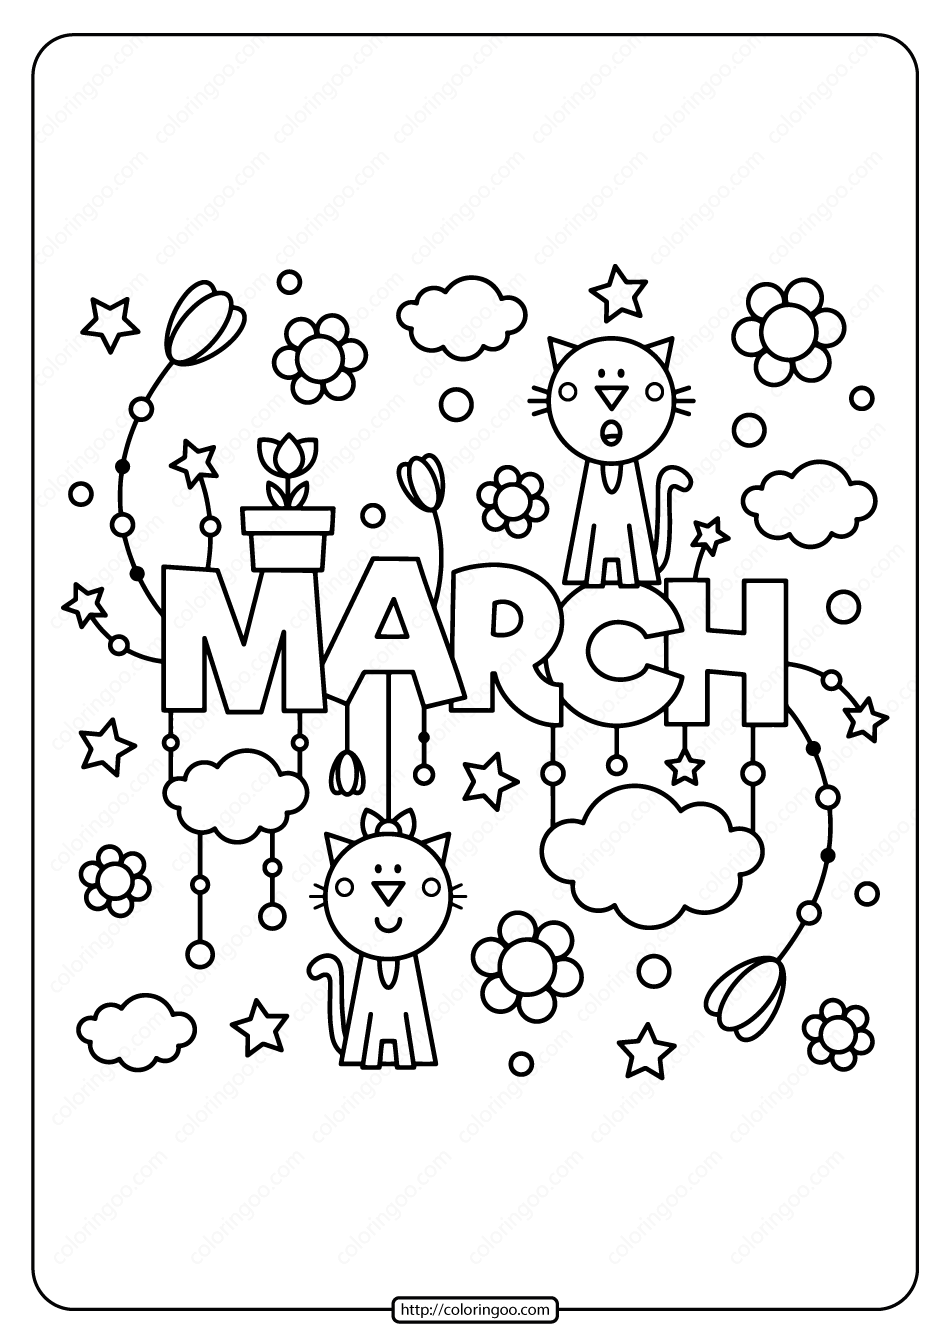 Free Printable March Pdf Coloring Page In 2020 Coloring Pages Detailed Coloring Pages Spring Coloring Pages